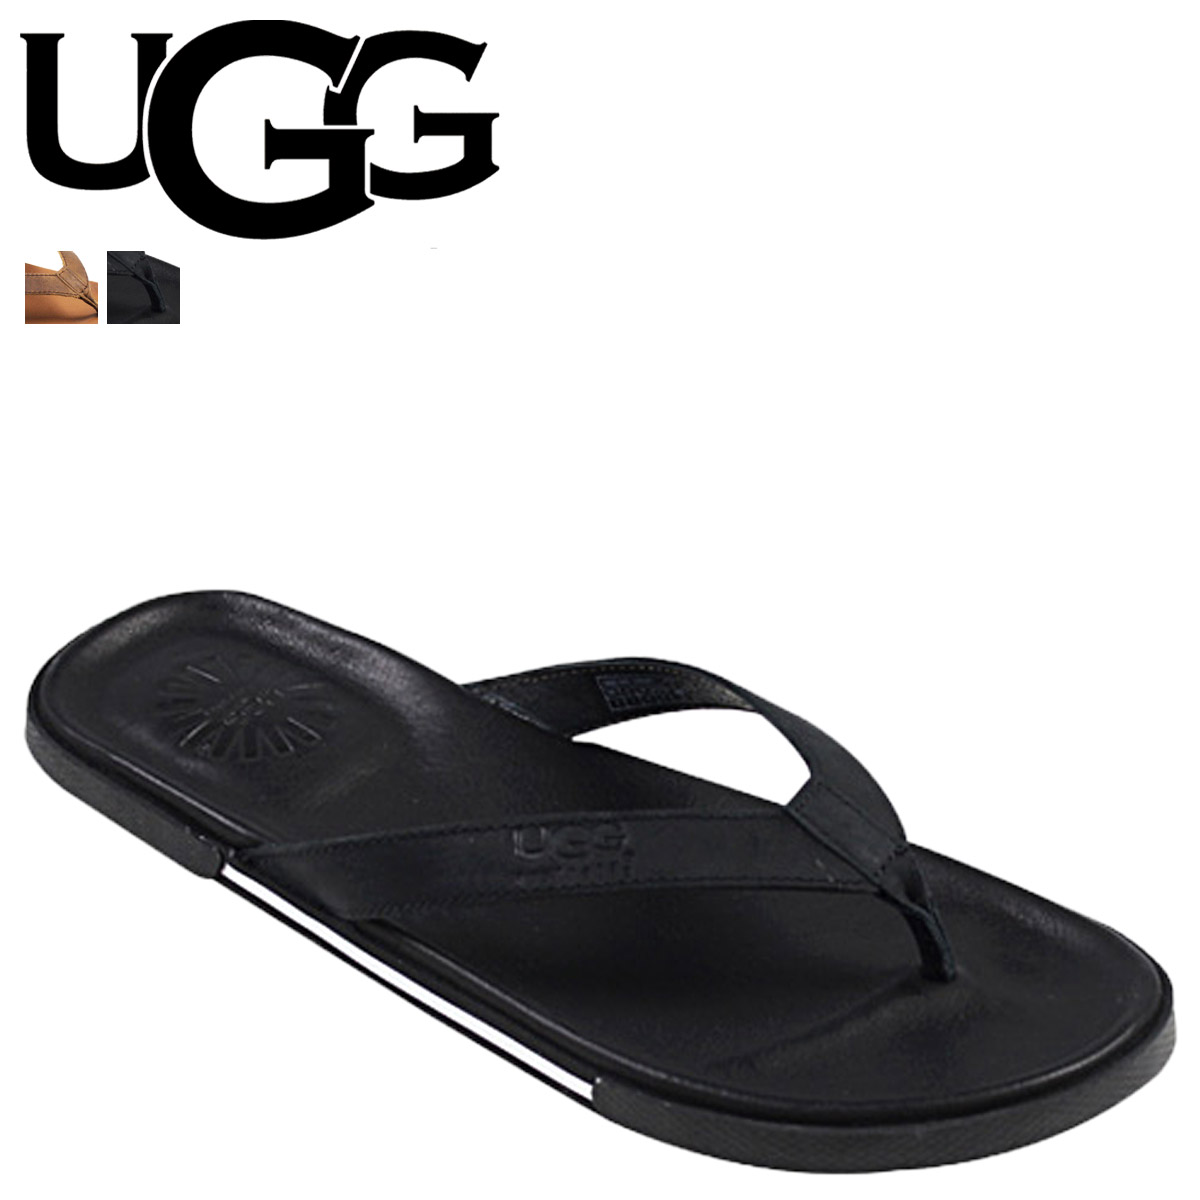 cf2abaee9a5 Ugg Mens Sandals Uk - Home Decorating Ideas & Interior Design